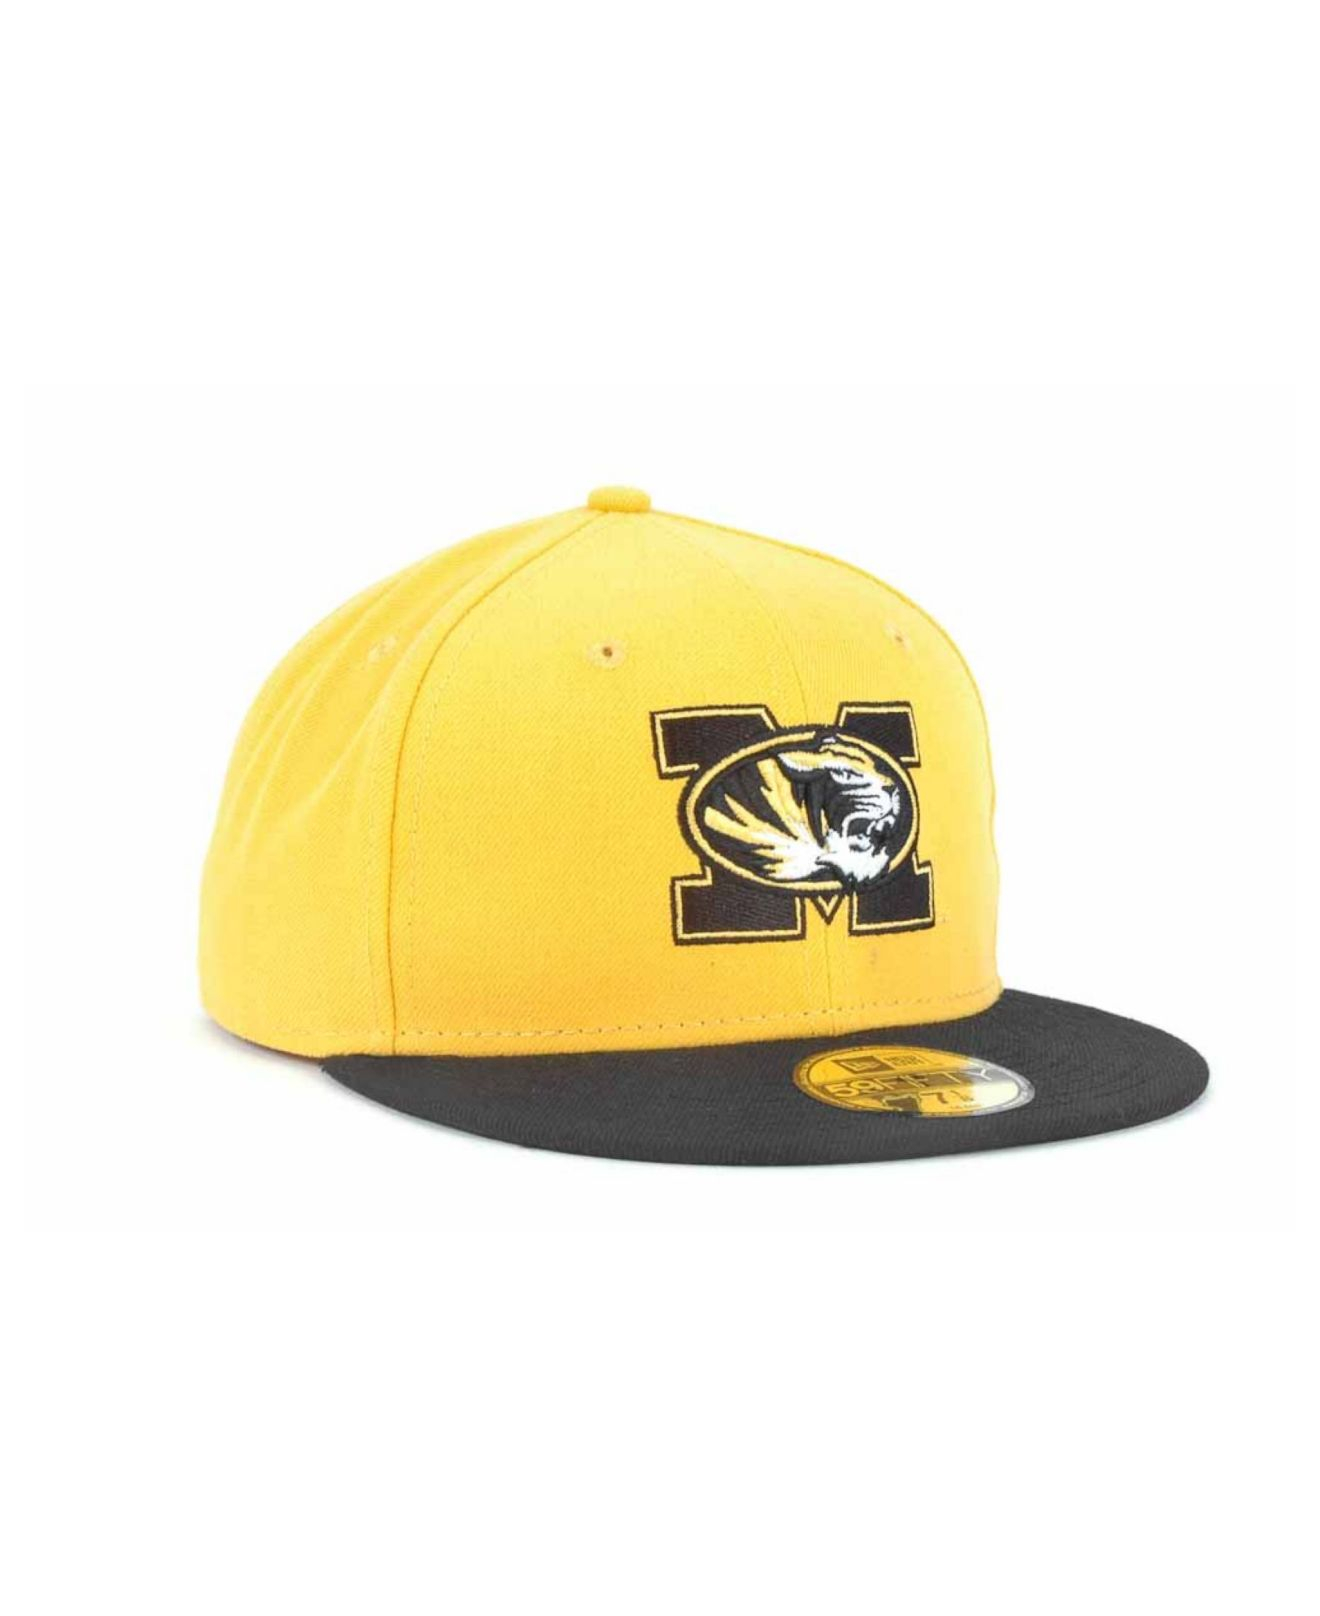 huge selection of 65f32 5bcdc Lyst - KTZ Missouri Tigers 2 Tone 59fifty Cap in Black for Men